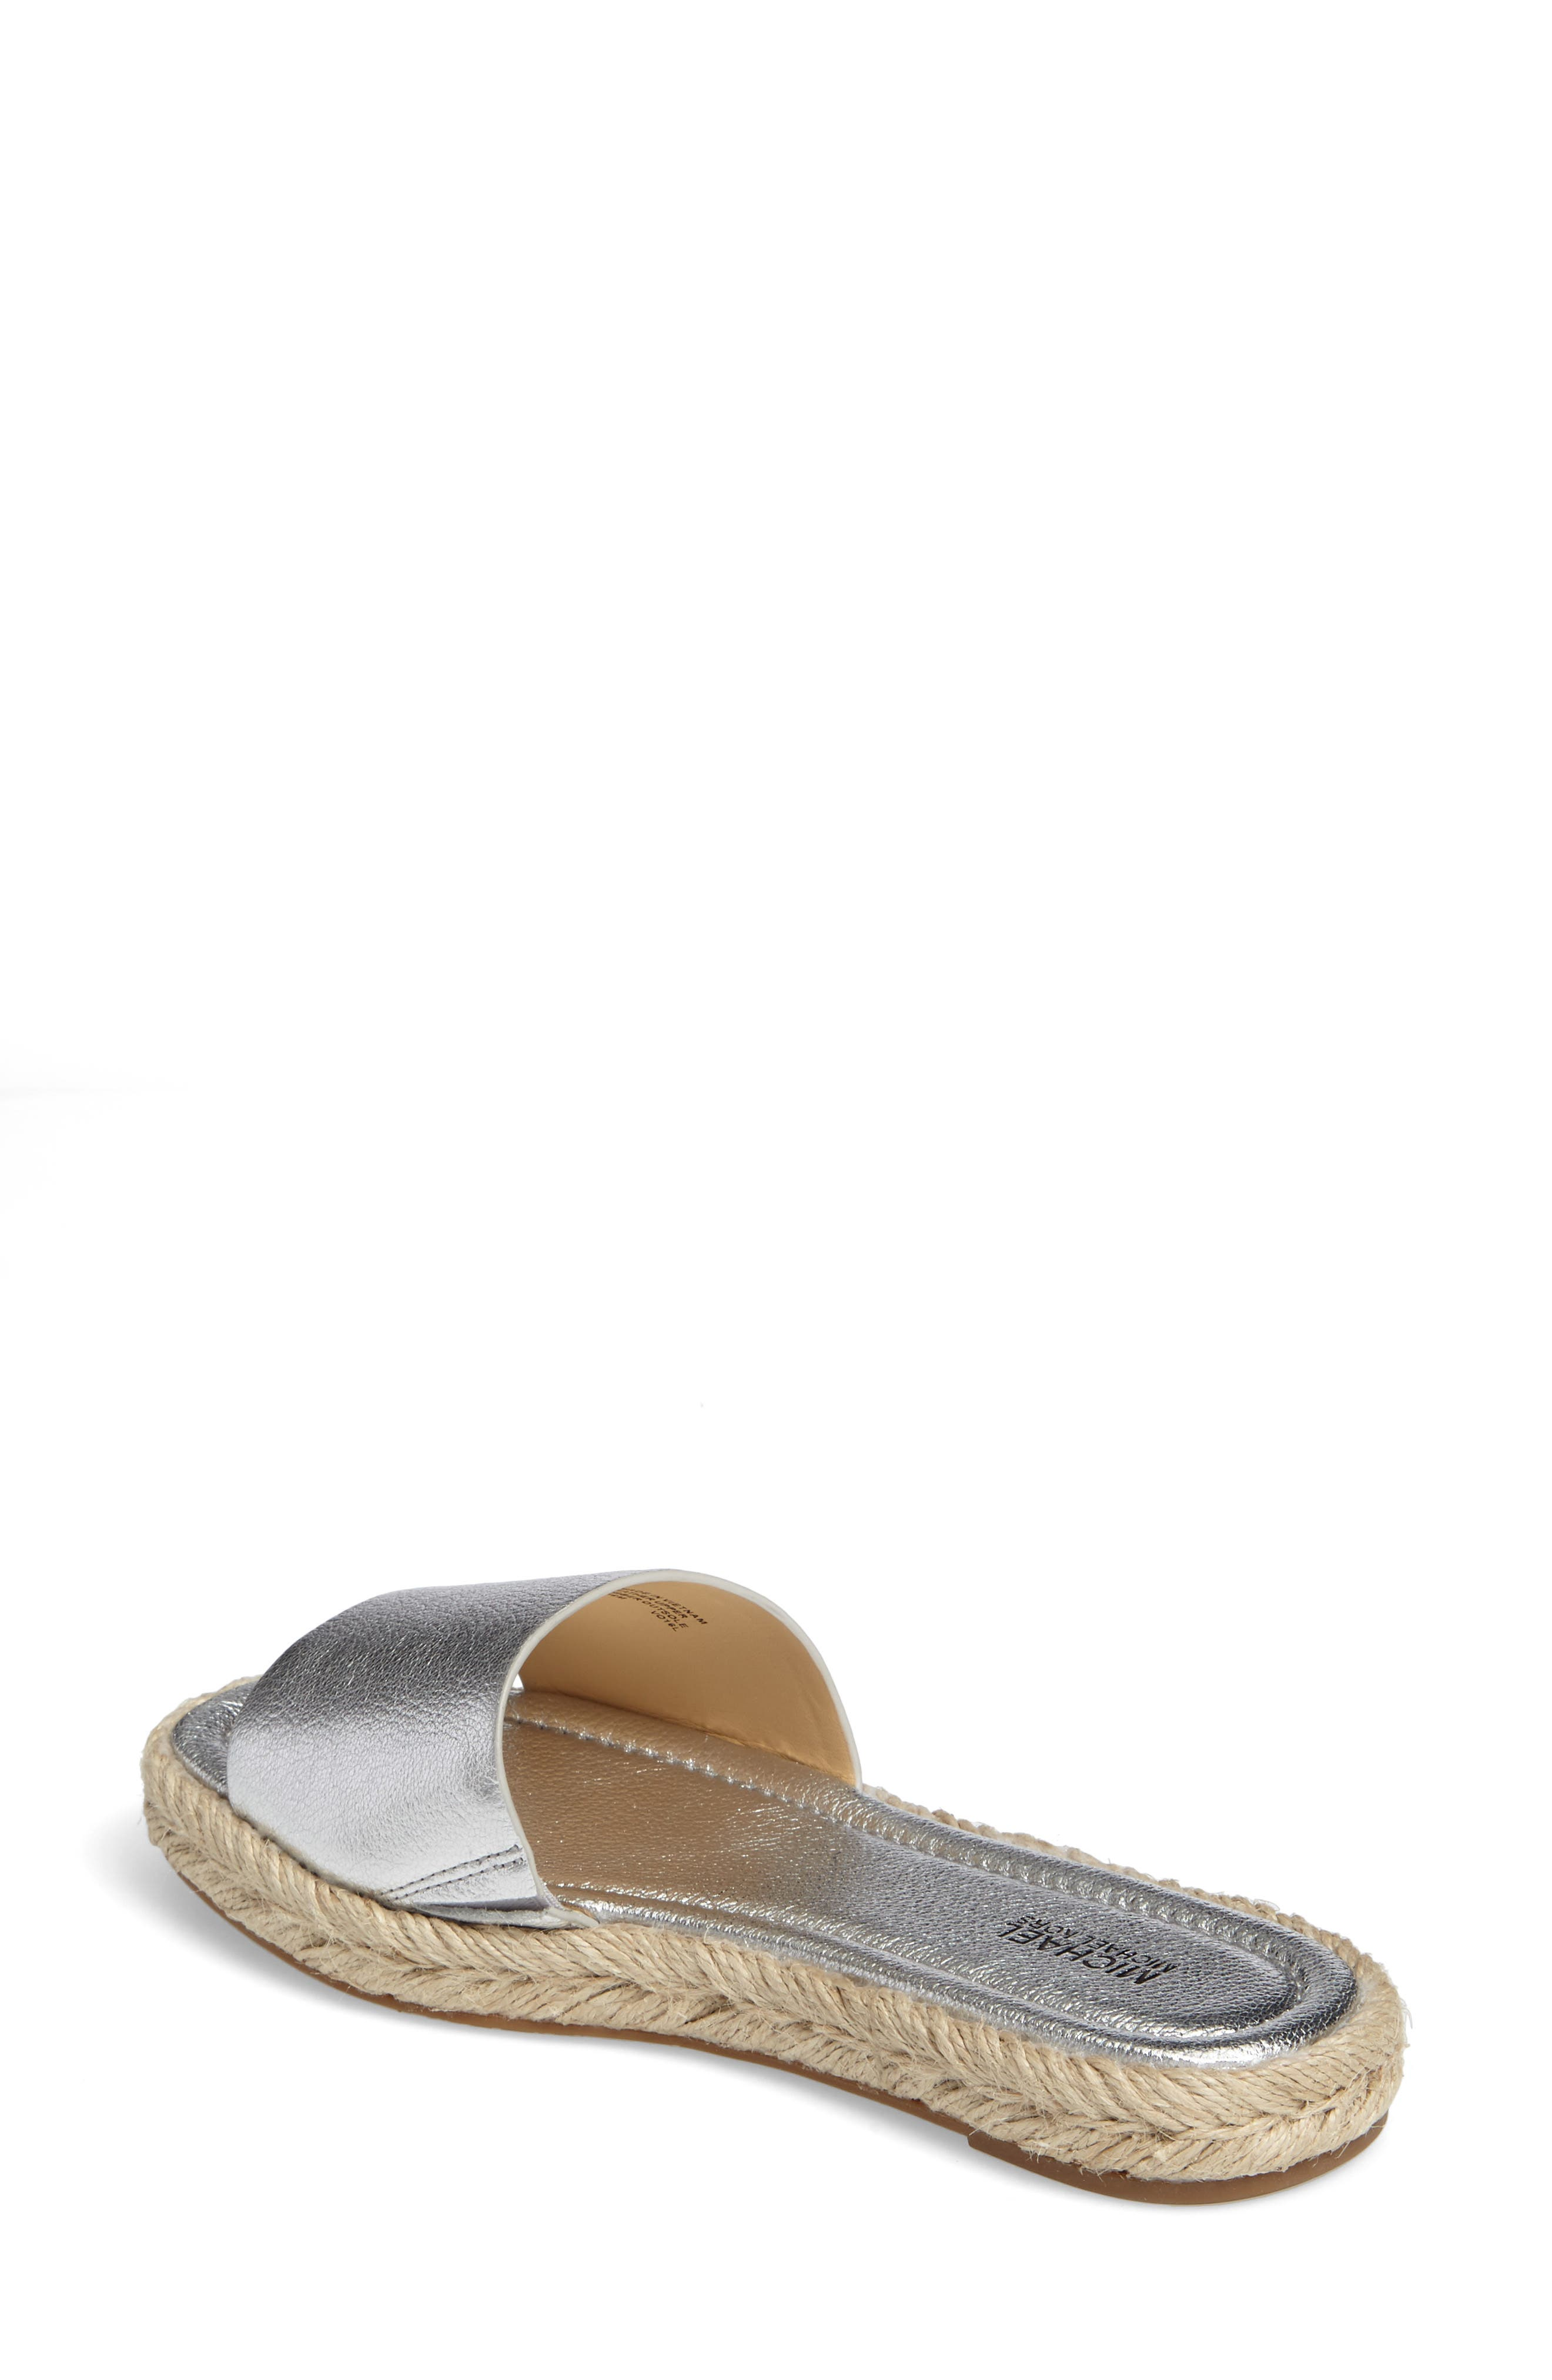 Alternate Image 2  - MICHAEL Michael Kors Dempsey Slide Sandal (Women)